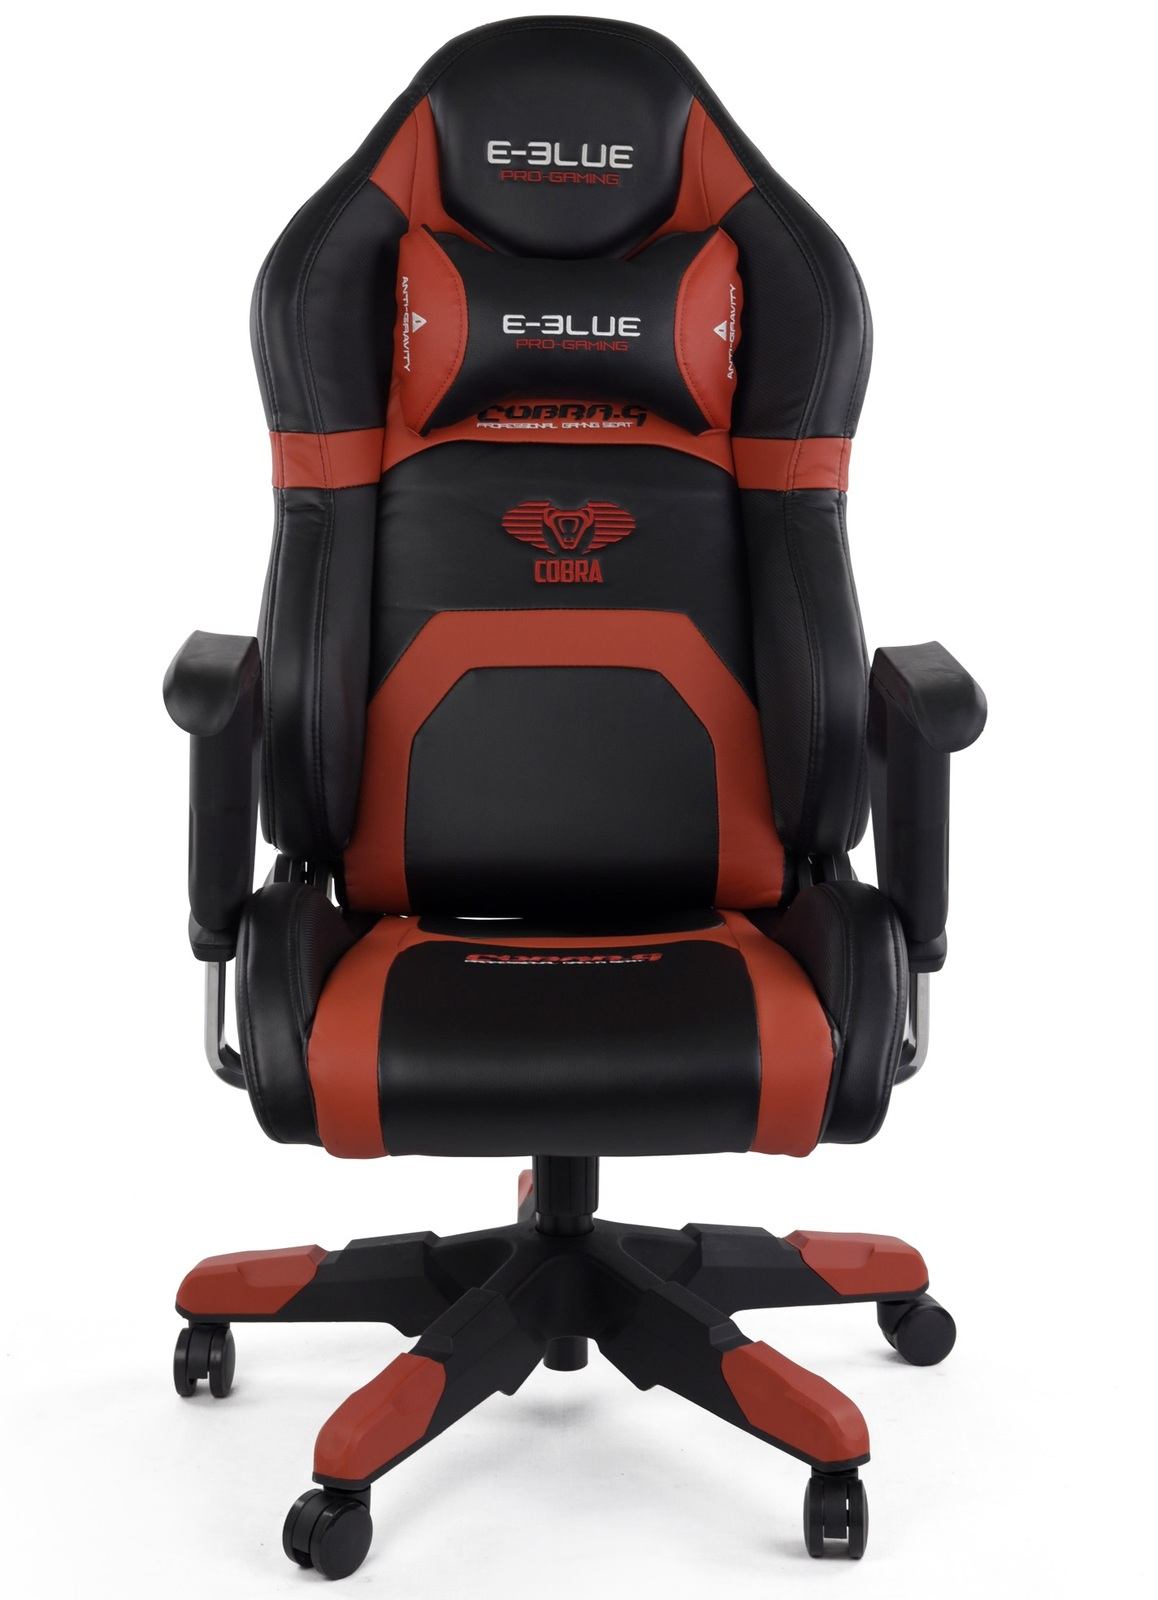 E-Blue Cobra Racing Gaming Chair (Red) for  image